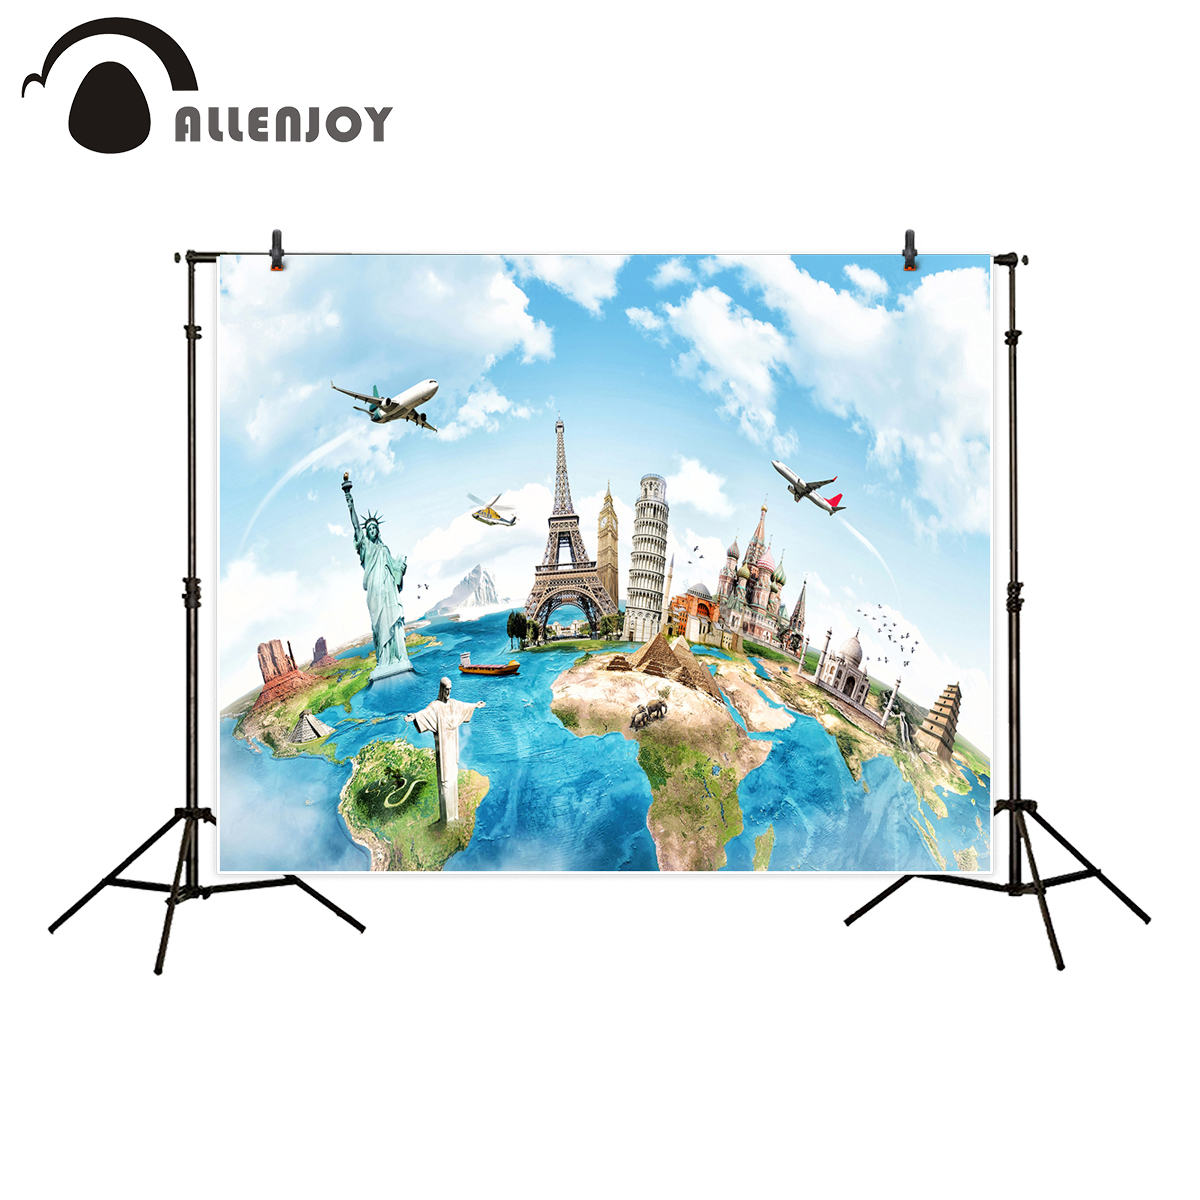 Allenjoy background for photo studio world travel sky air plane building backdrop portrait shooting newborn photocall photobooth allenjoy background photography pink birthday table flower cake wood backdrop photocall photobooth photo studio